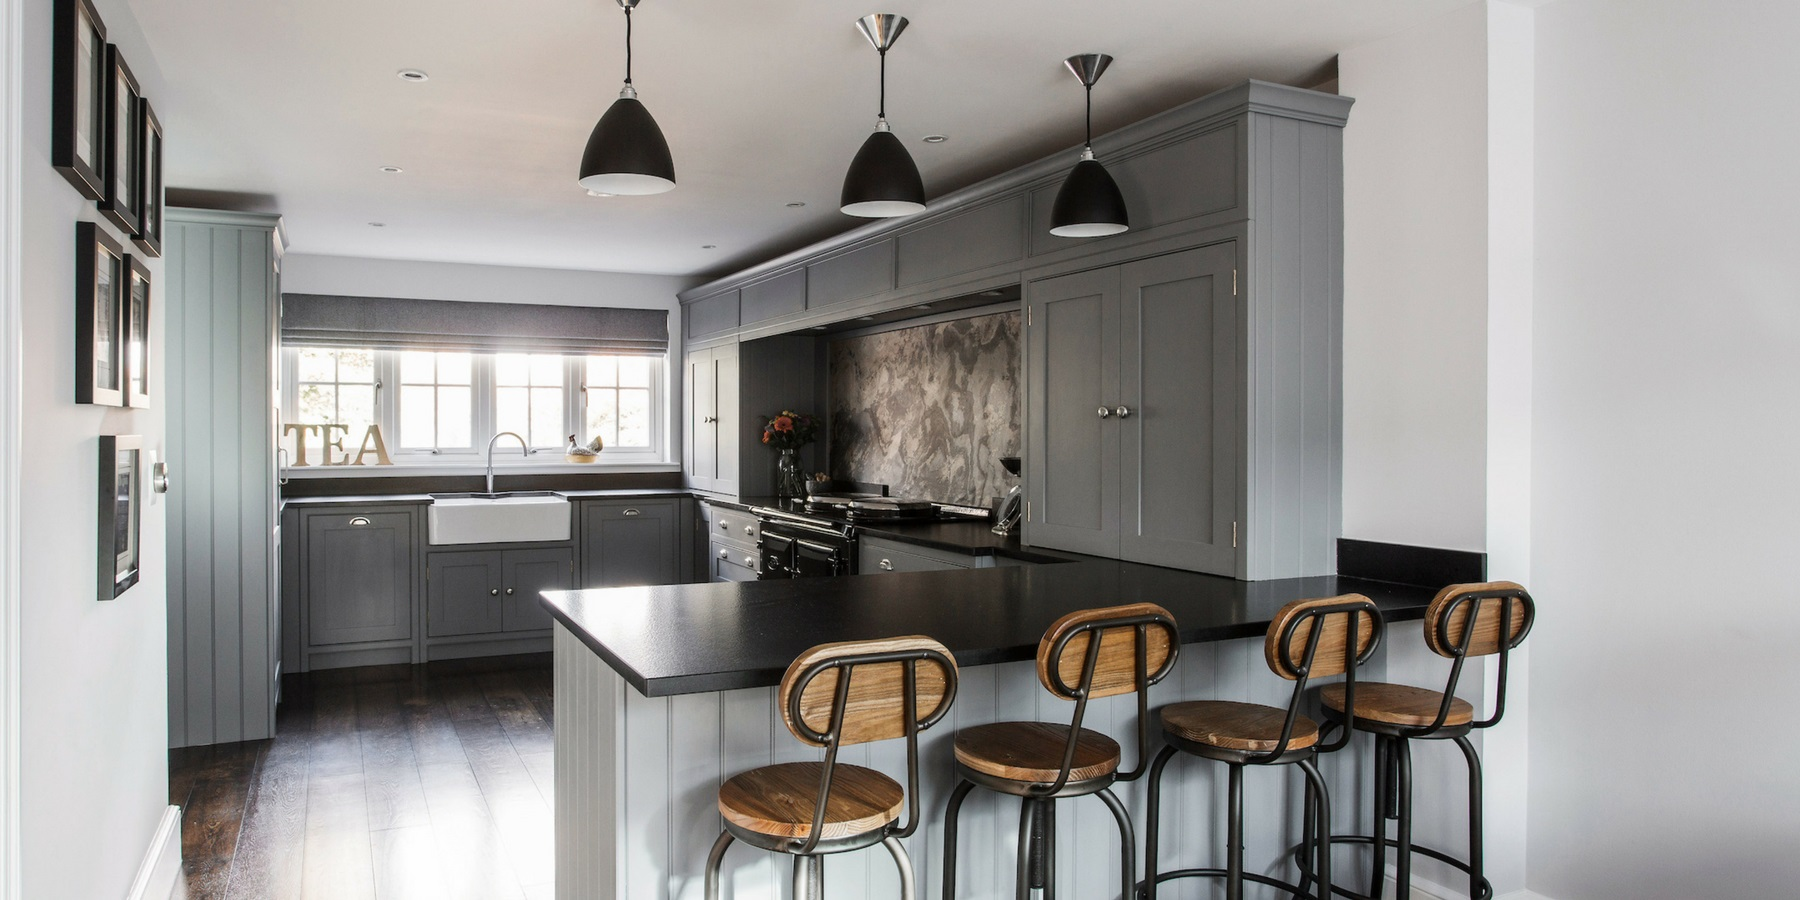 Burlanes Interiors - A Functional Family Kitchen